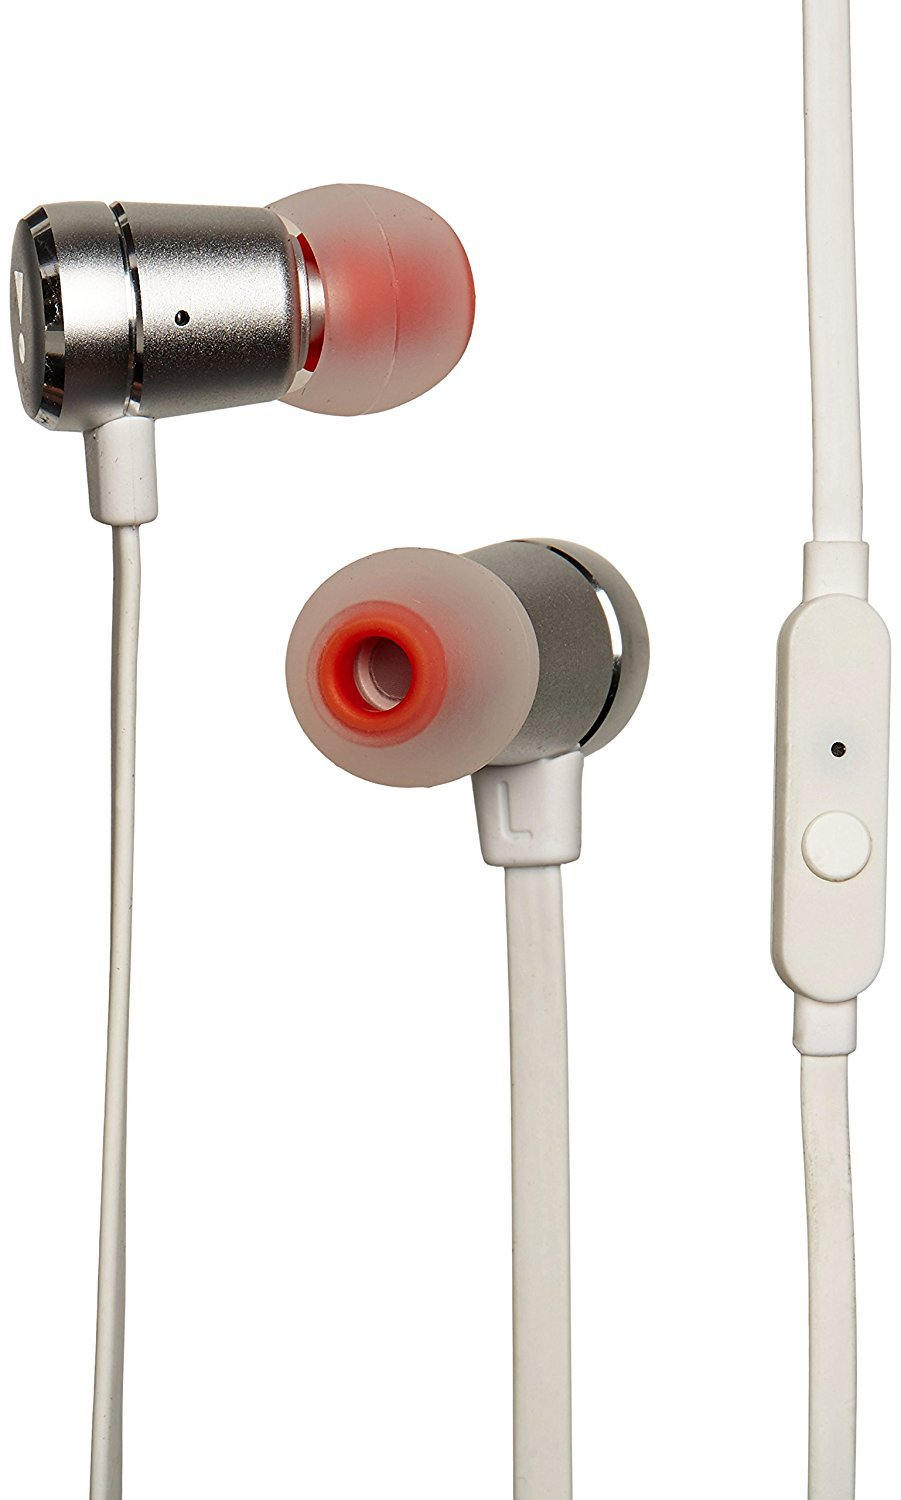 (New) Premium JBL - Harman Aluminum in-Ear Headphones with Tangle Free Cord and Pure Bass T290 High Performance with Universal 1 Button Remote/mic - White and Silver Color